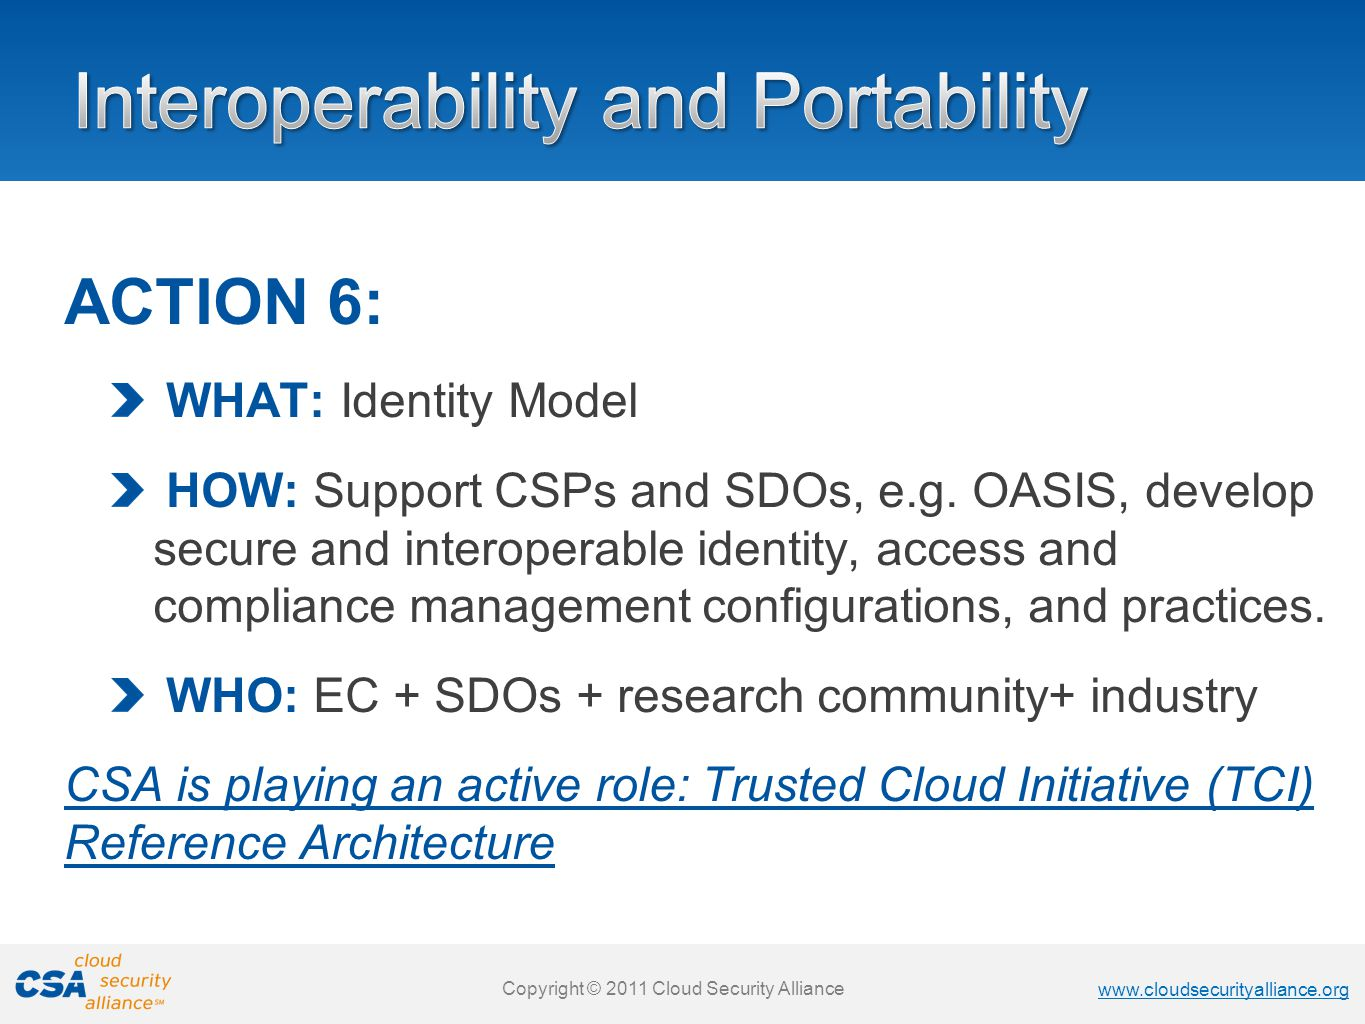 www.cloudsecurityalliance.org Copyright © 2011 Cloud Security Alliance www.cloudsecurityalliance.org Copyright © 2011 Cloud Security Alliance www.cloudsecurityalliance.org Copyright © 2011 Cloud Security Alliance www.cloudsecurityalliance.org Copyright © 2011 Cloud Security Alliance ACTION 6: WHAT: Identity Model HOW: Support CSPs and SDOs, e.g.